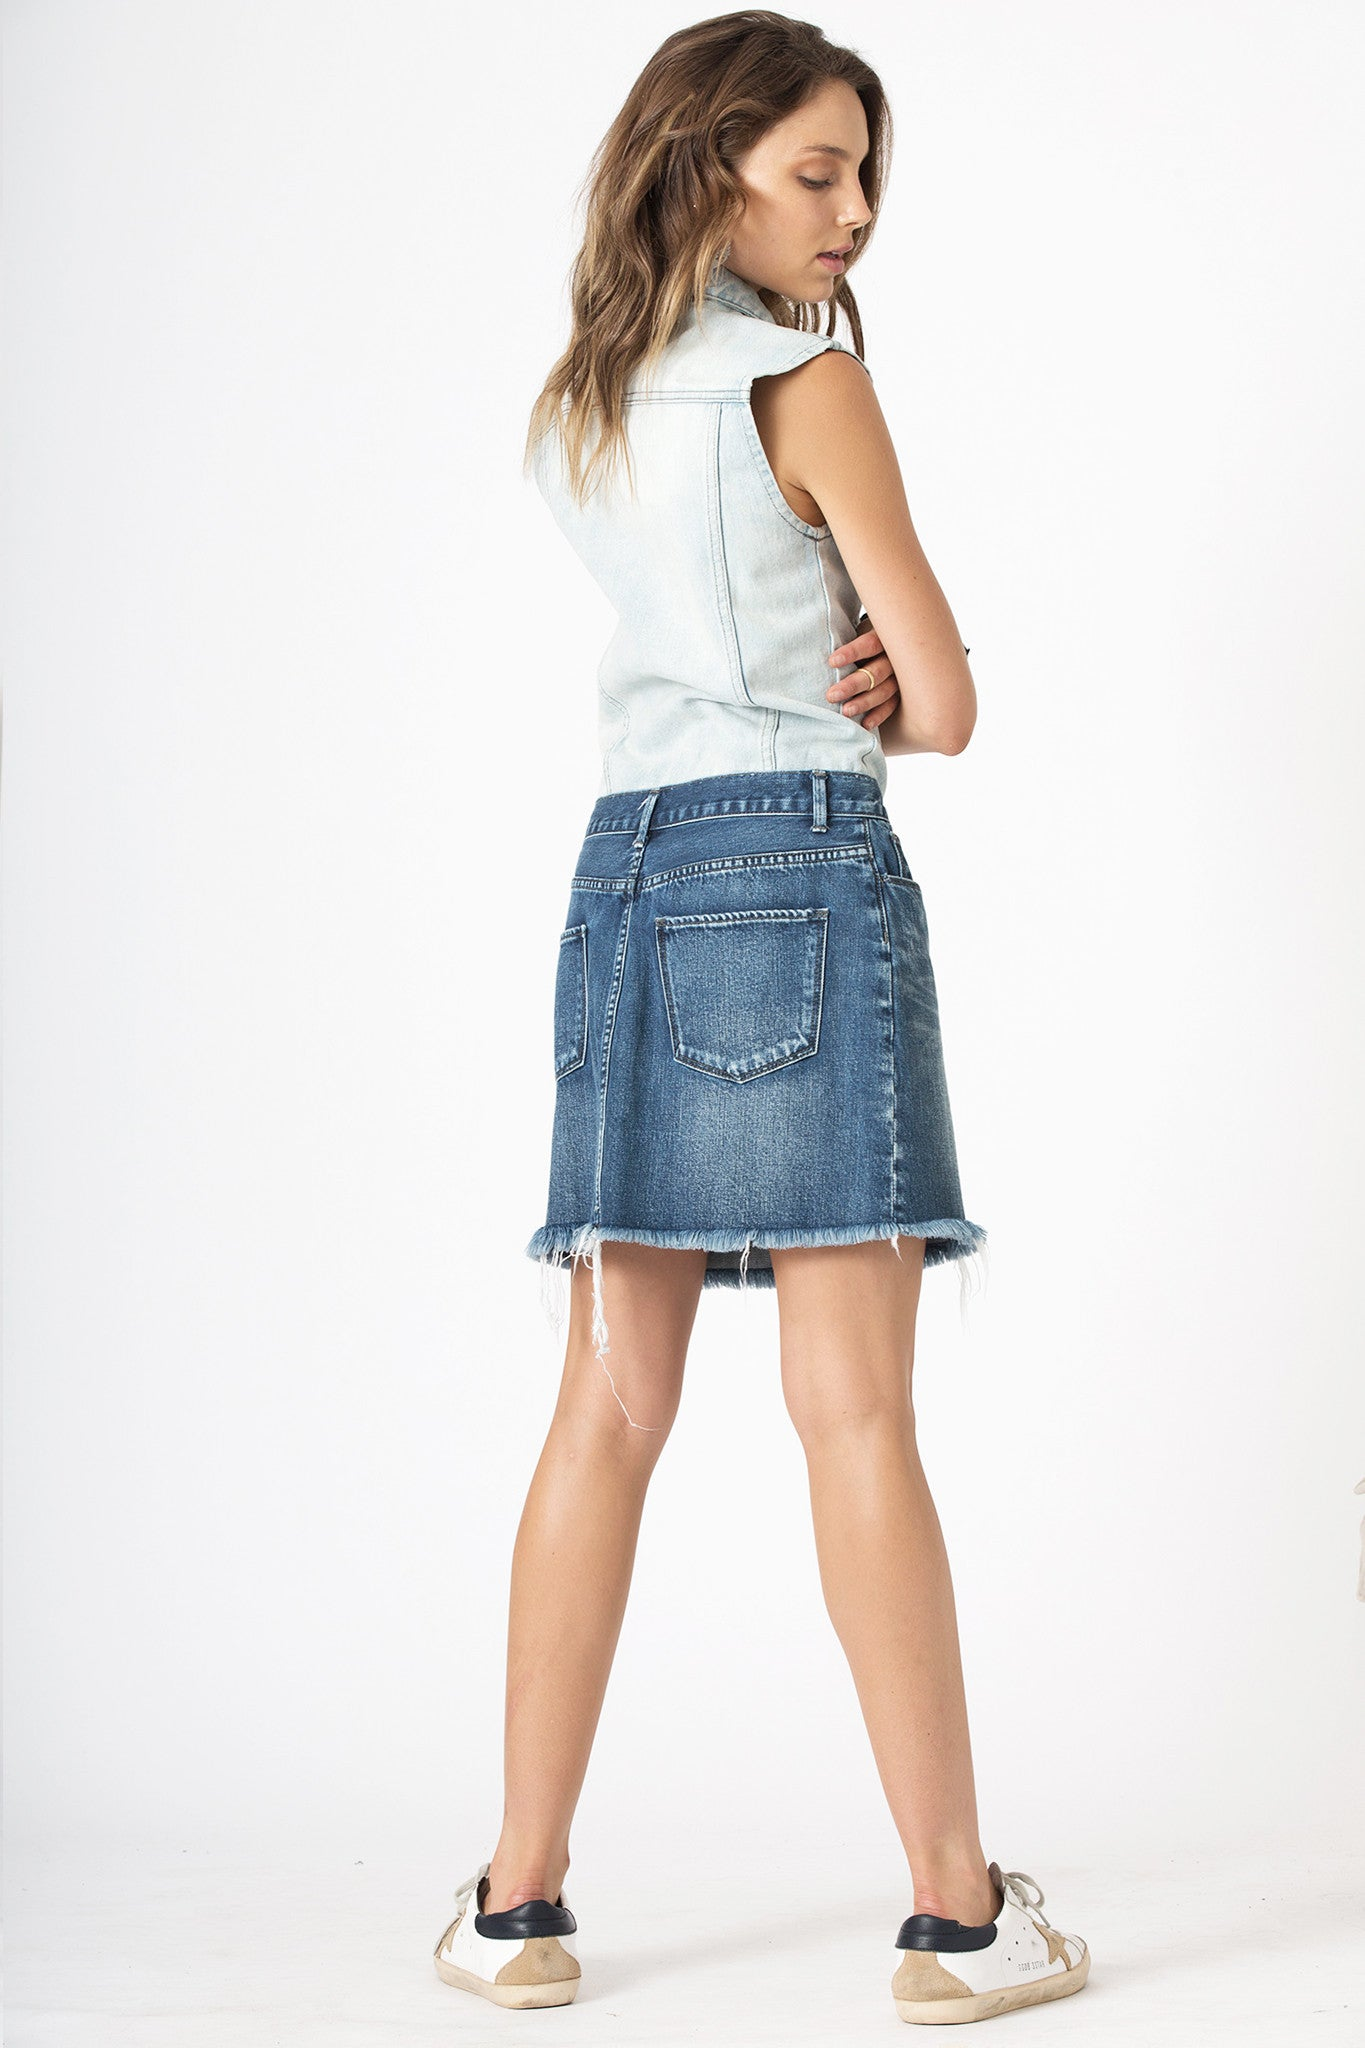 #3H12 Dress Cloudy Penny Blue - denimcolab